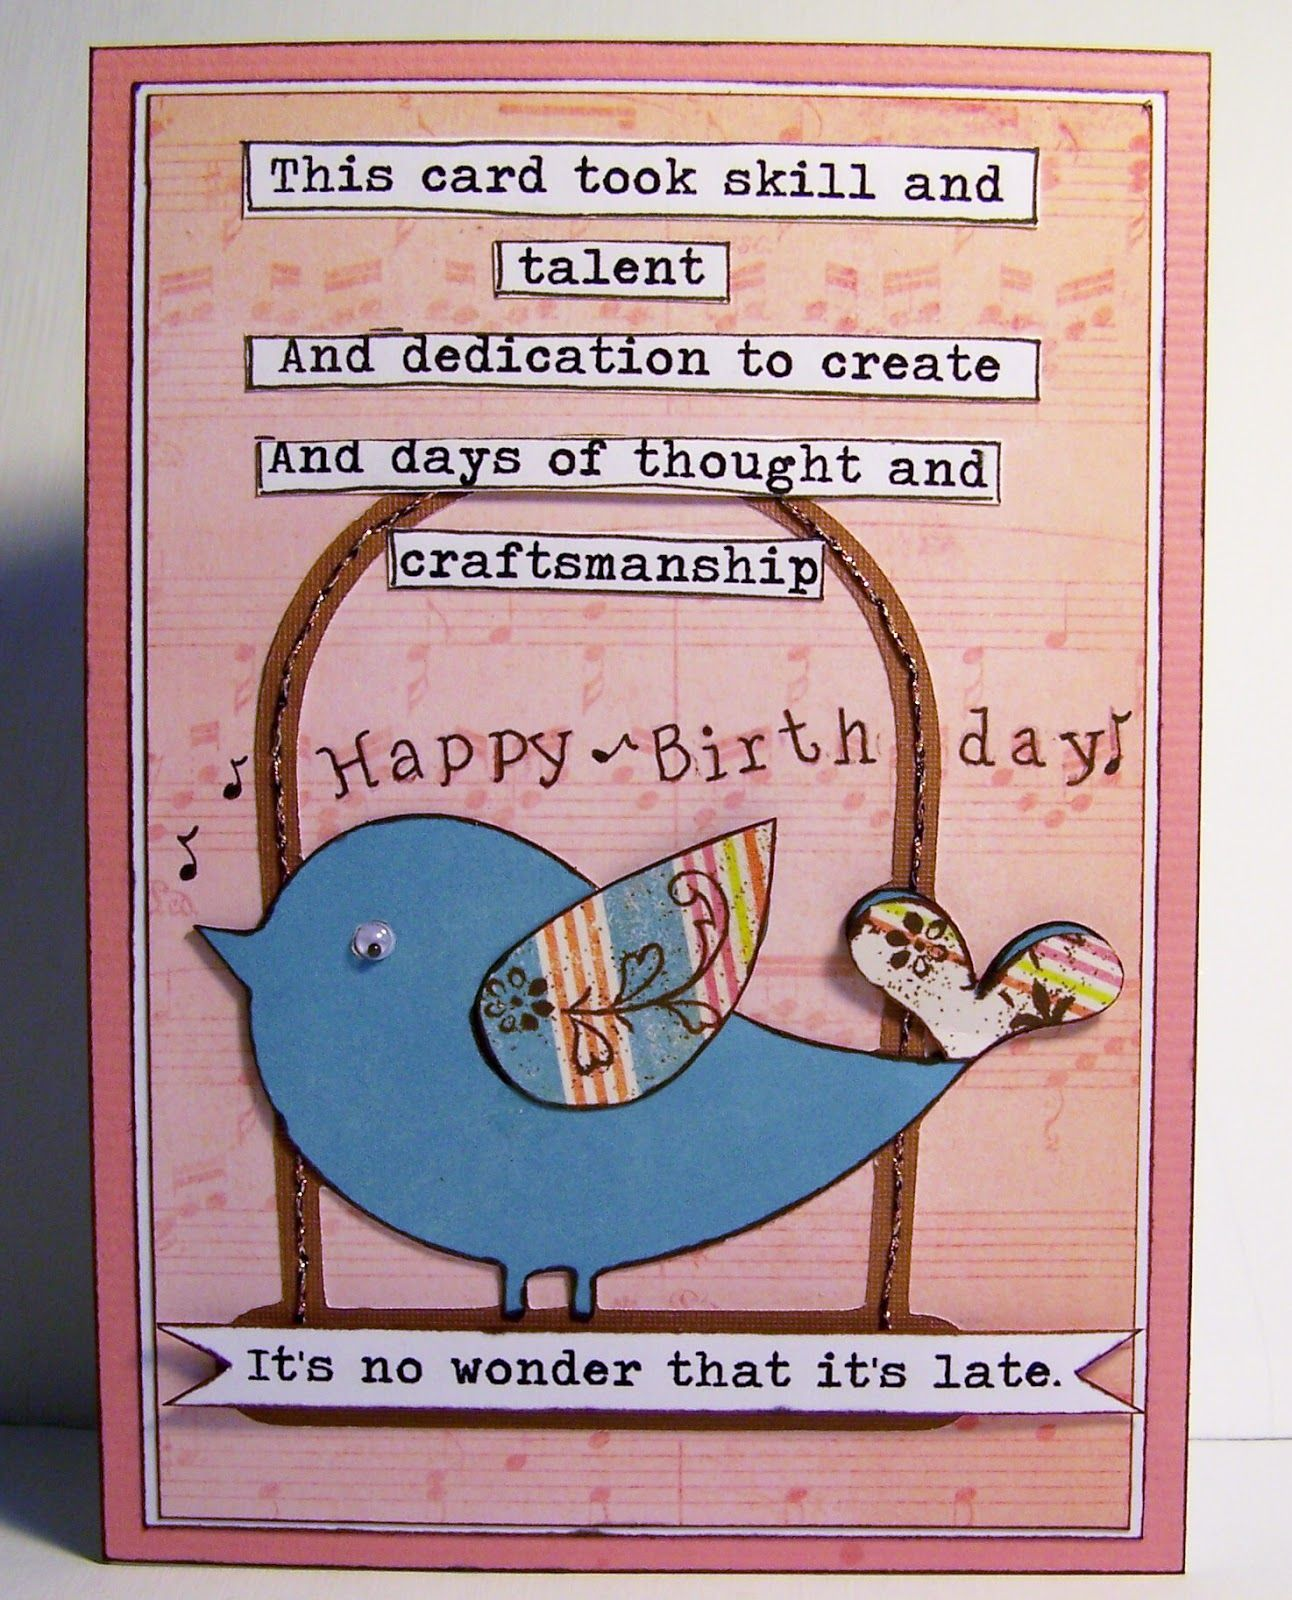 Love the sentiment! Belated birthday card, Funny